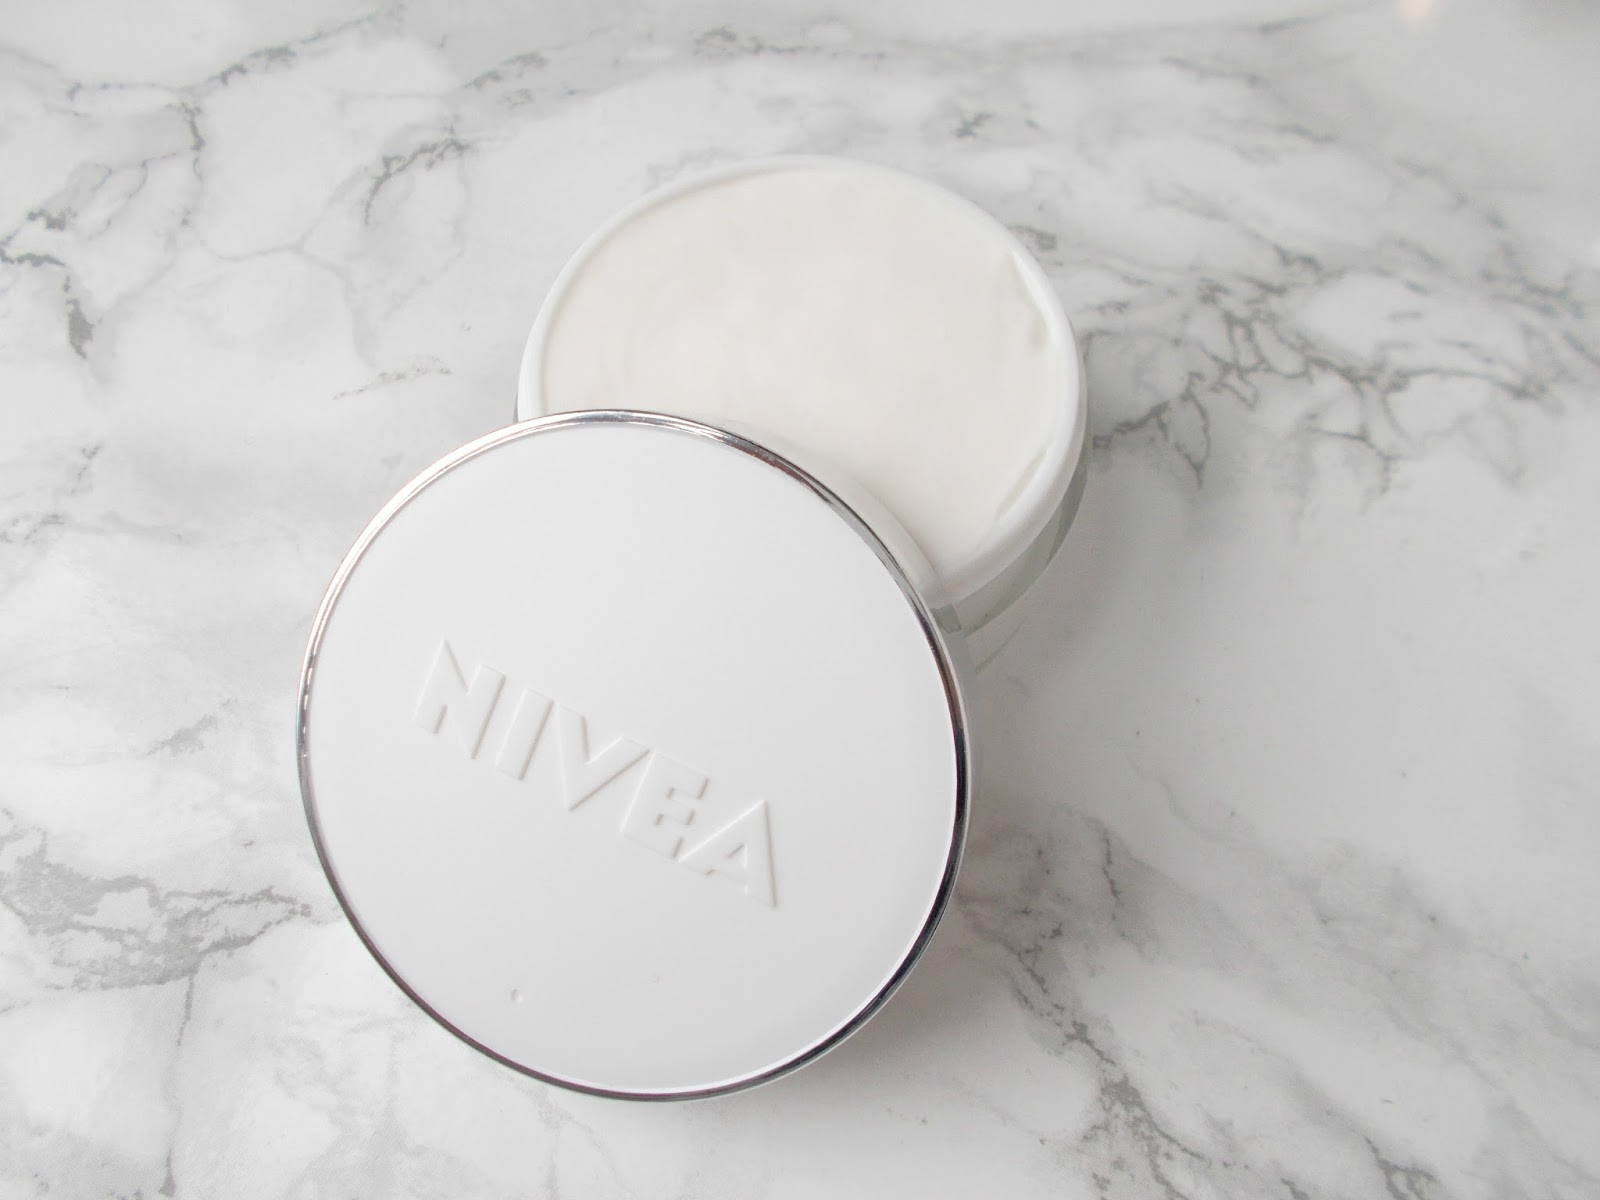 Nivea cellular radiance illuminating day cream review